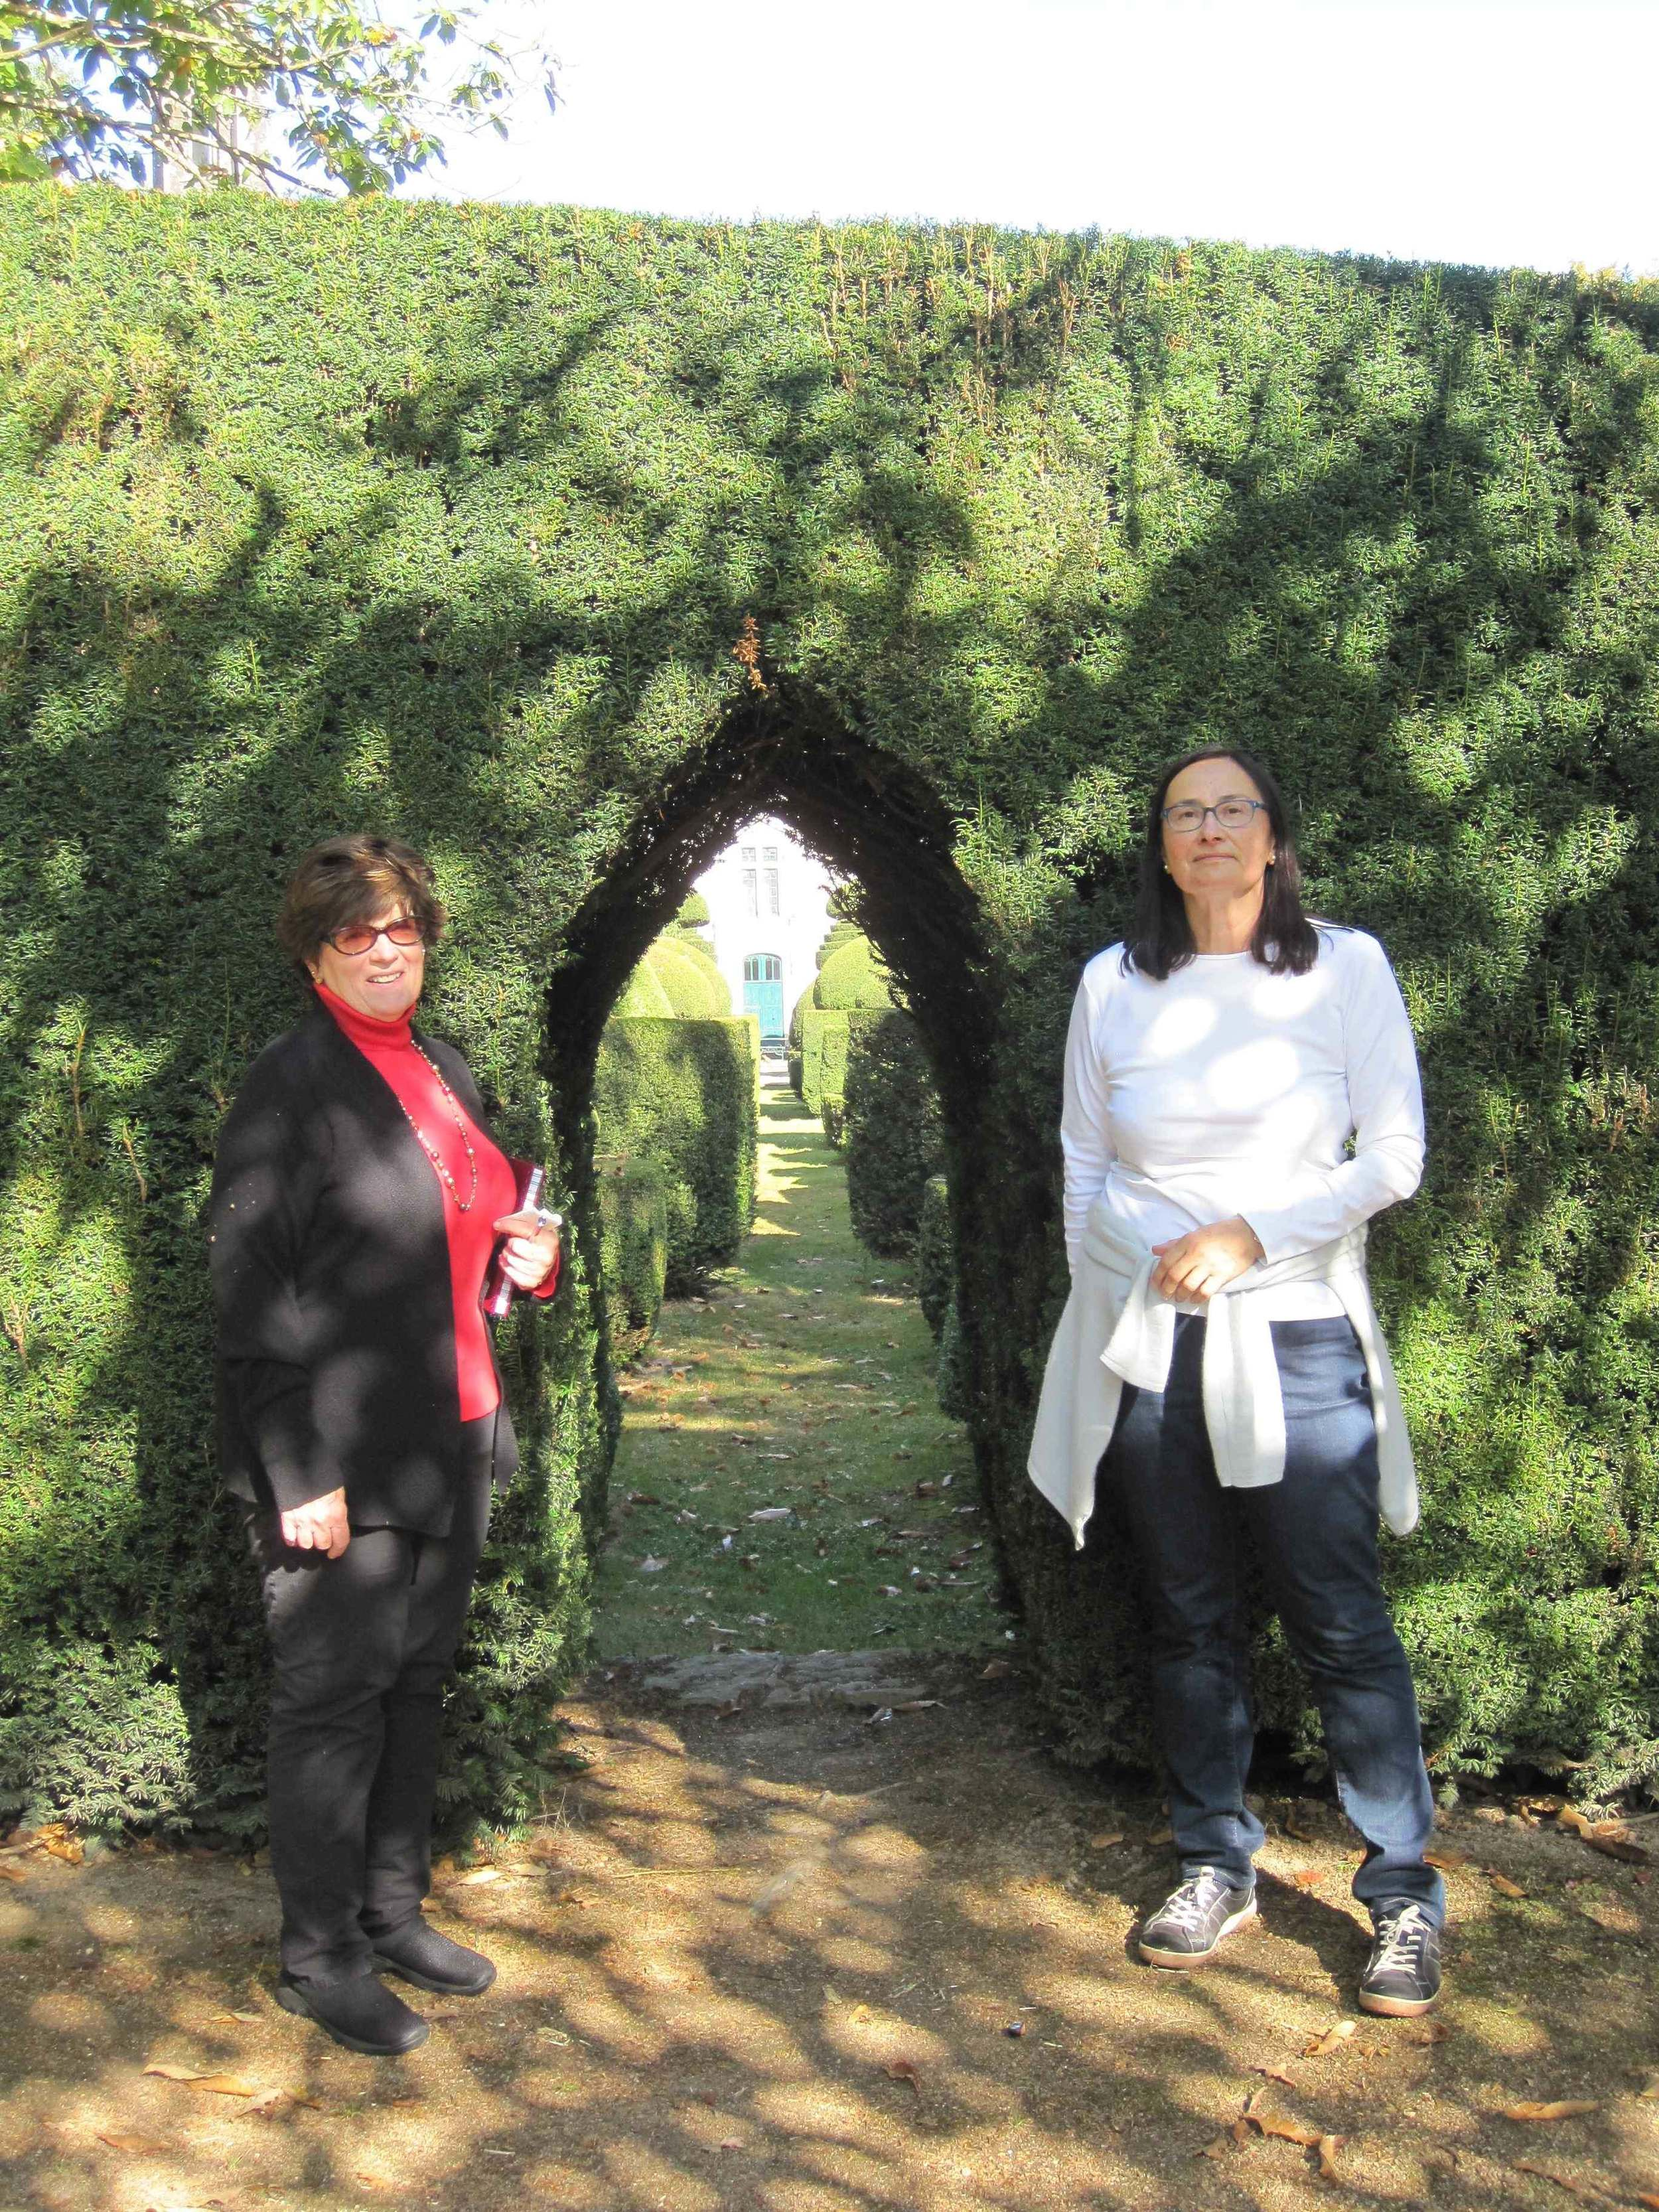 Mary and Candace in the topiary garden